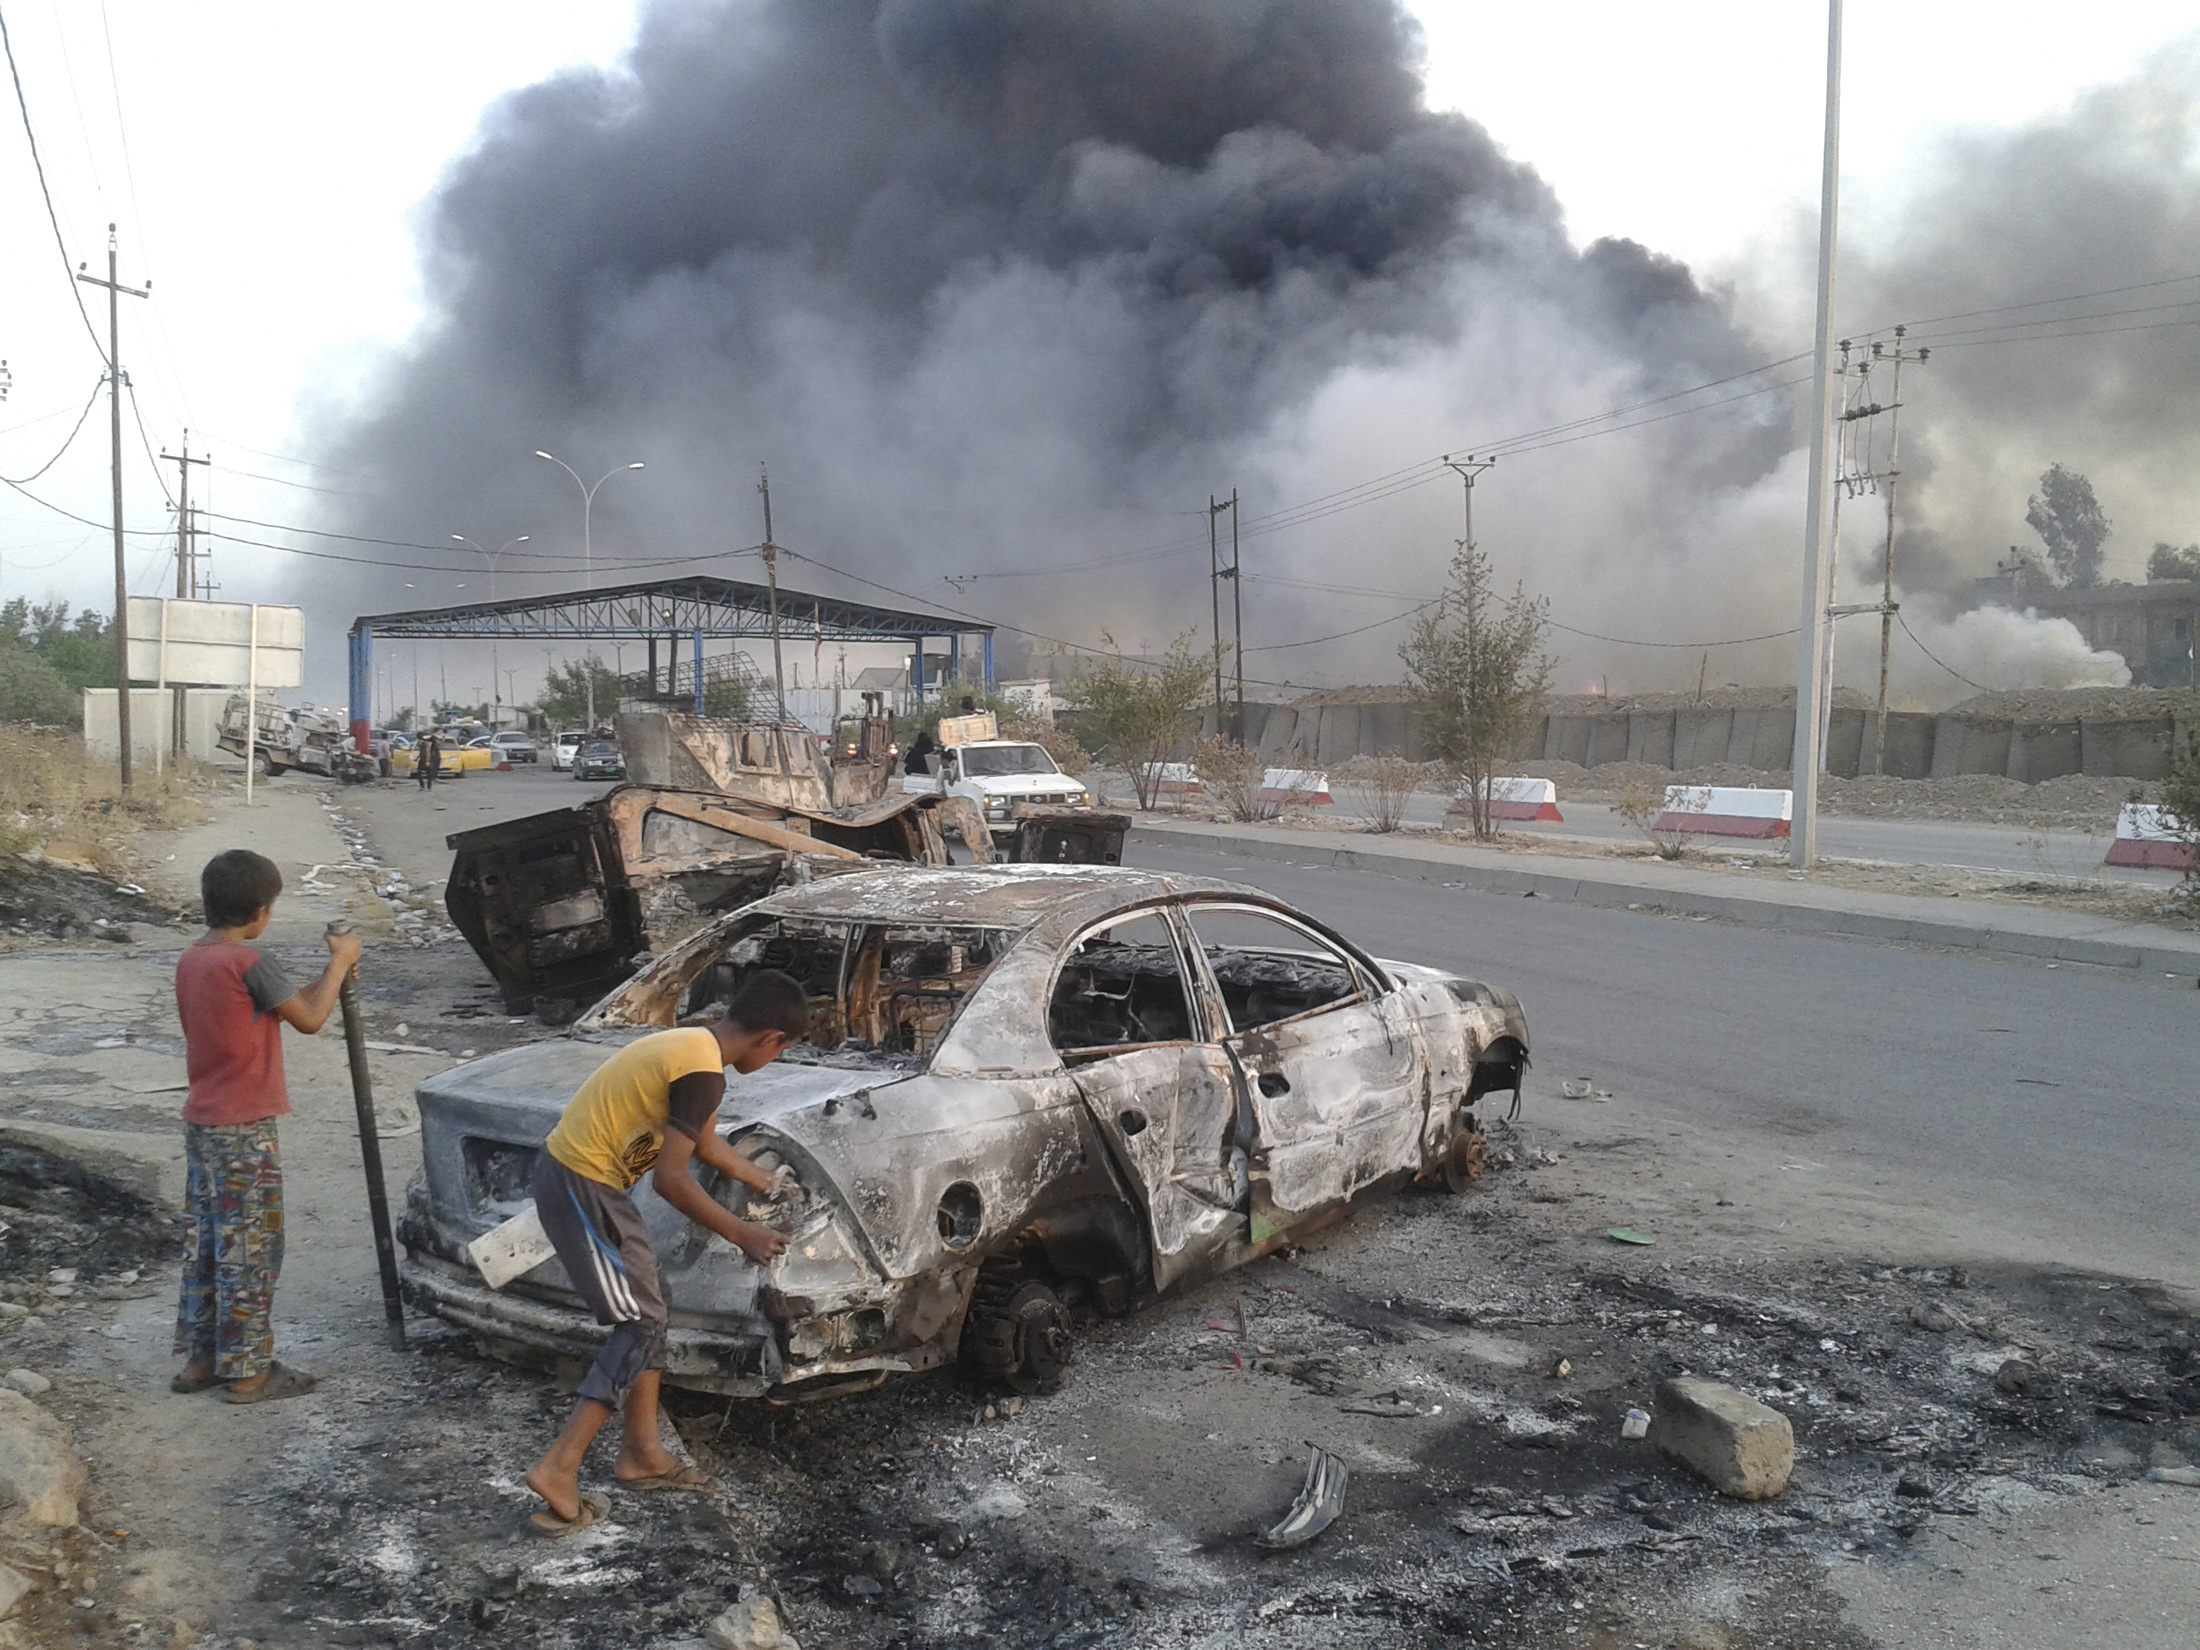 Children stand next to a burned-out vehicle during clashes between Iraqi forces and the Islamic State of Iraq and Syria in the northern Iraqi city of Mosul on June 10.